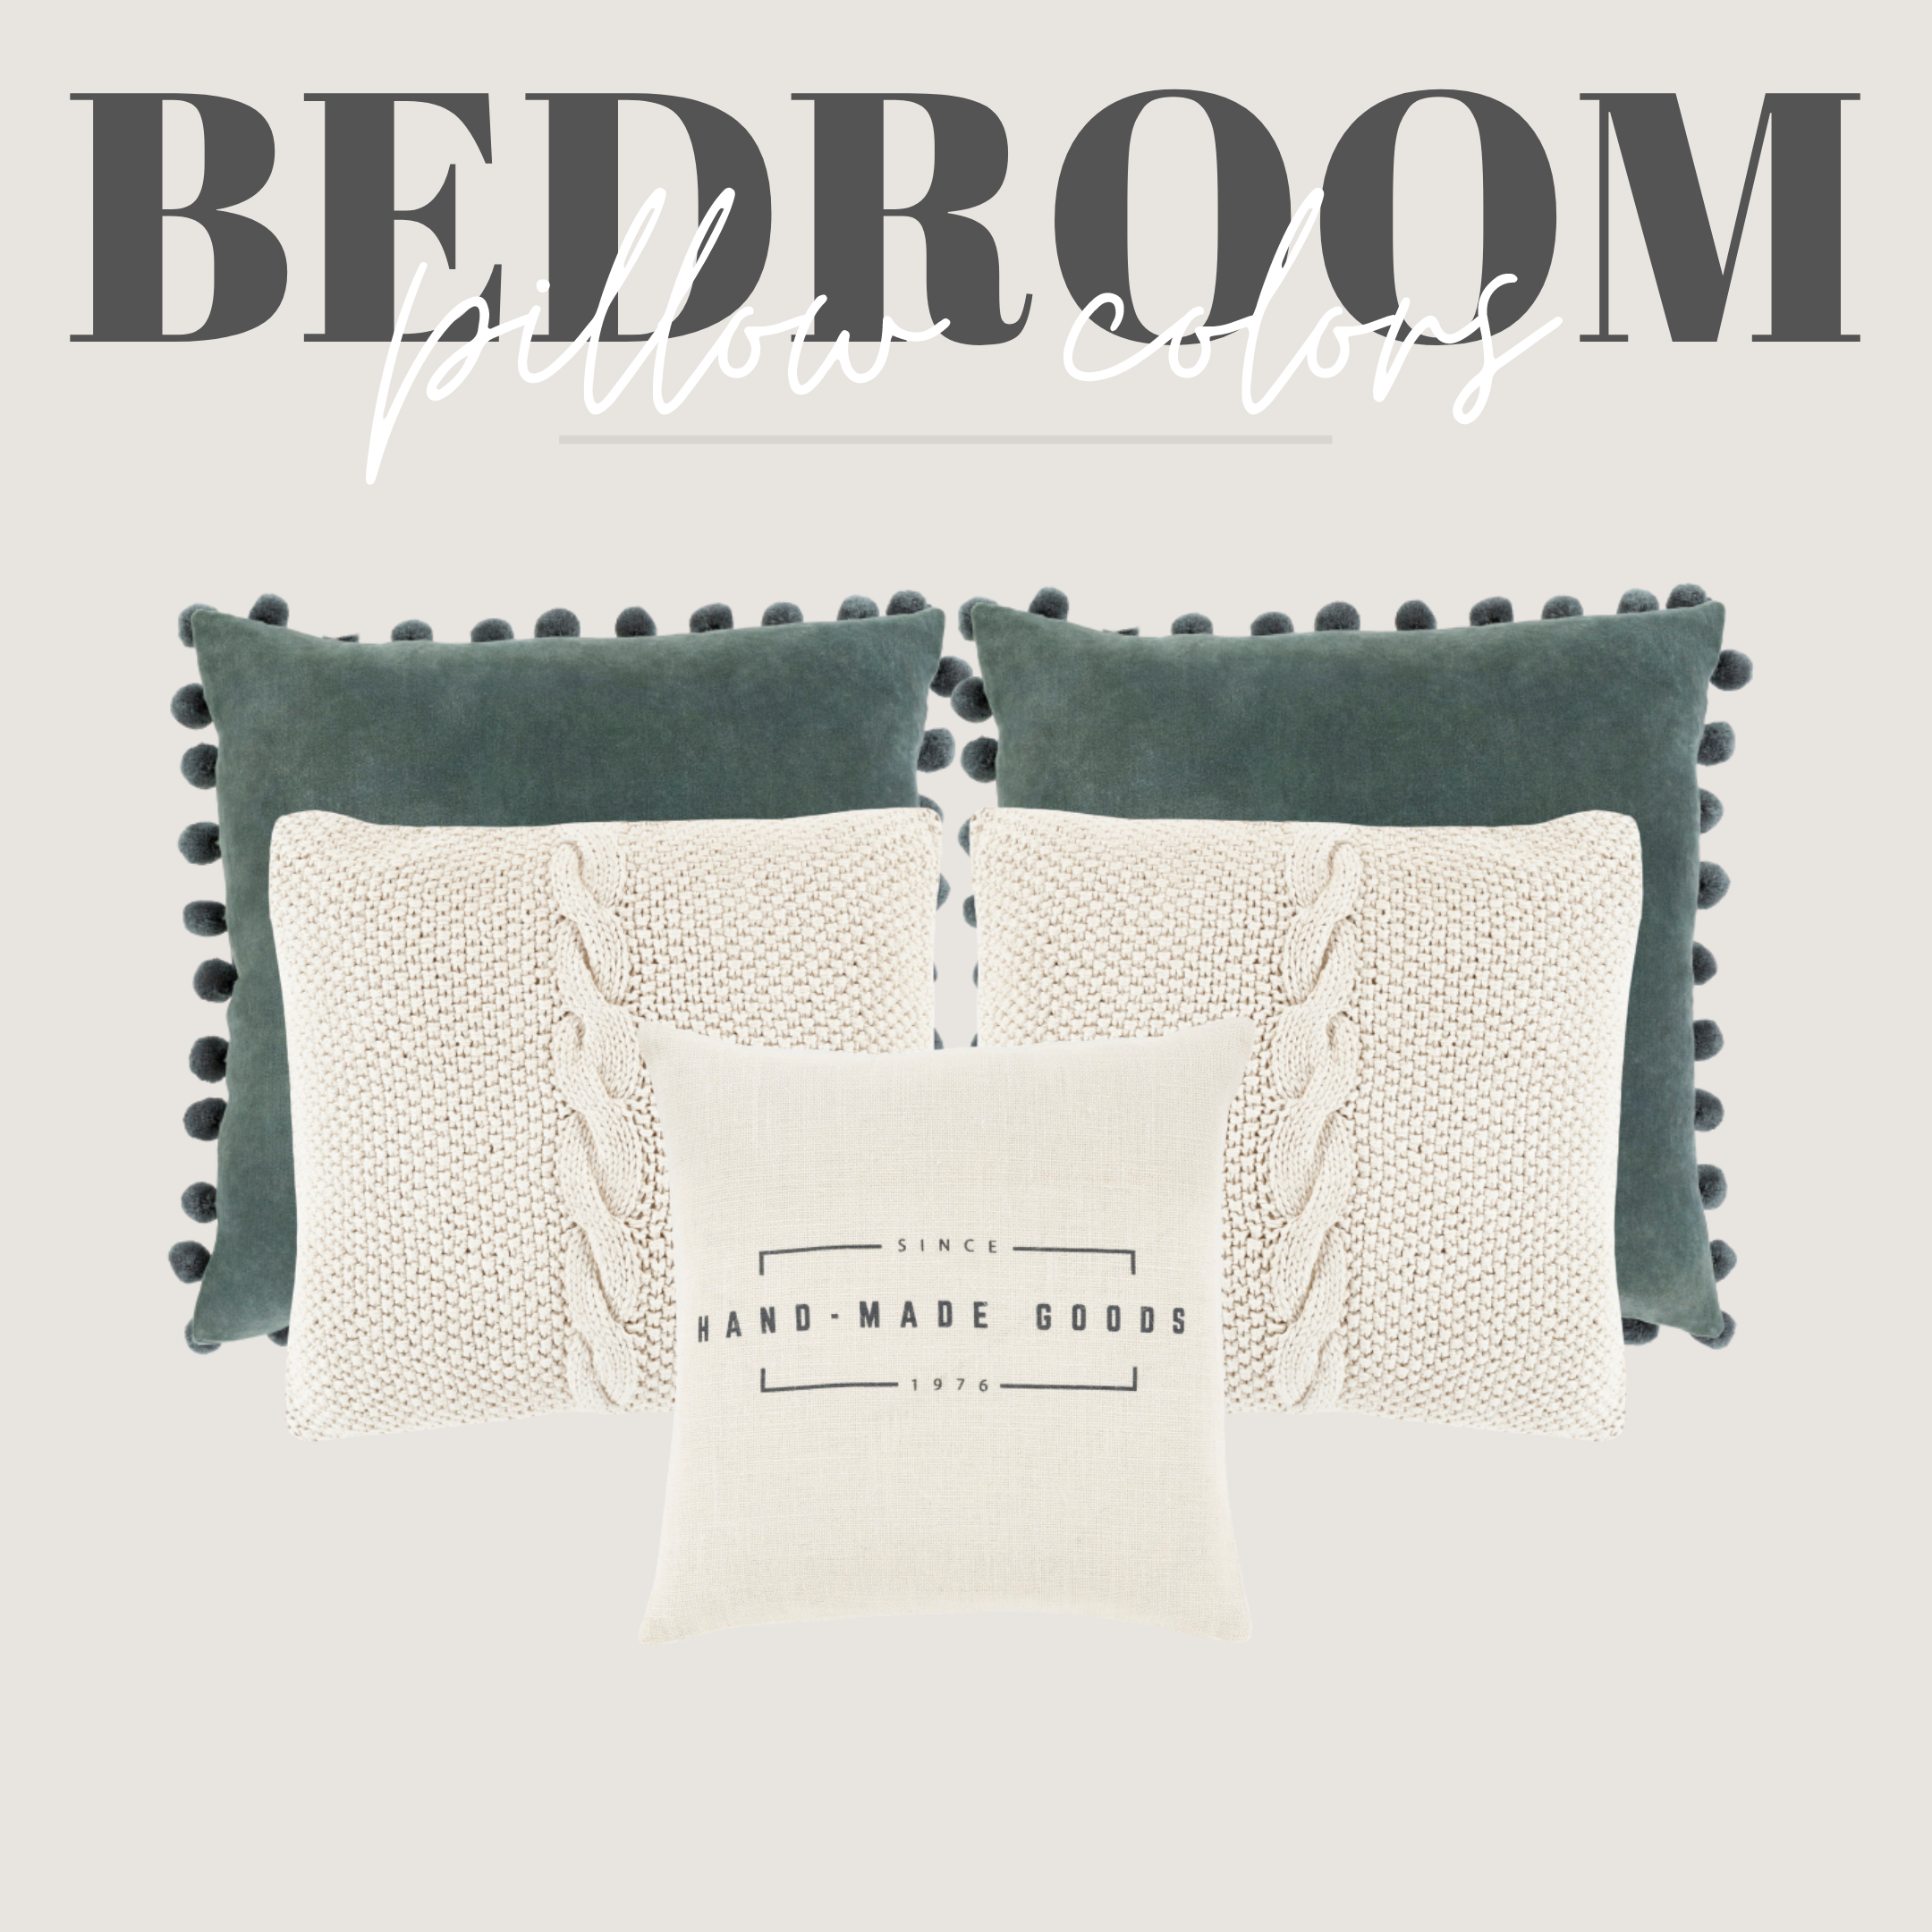 teal knit and handmade pillows